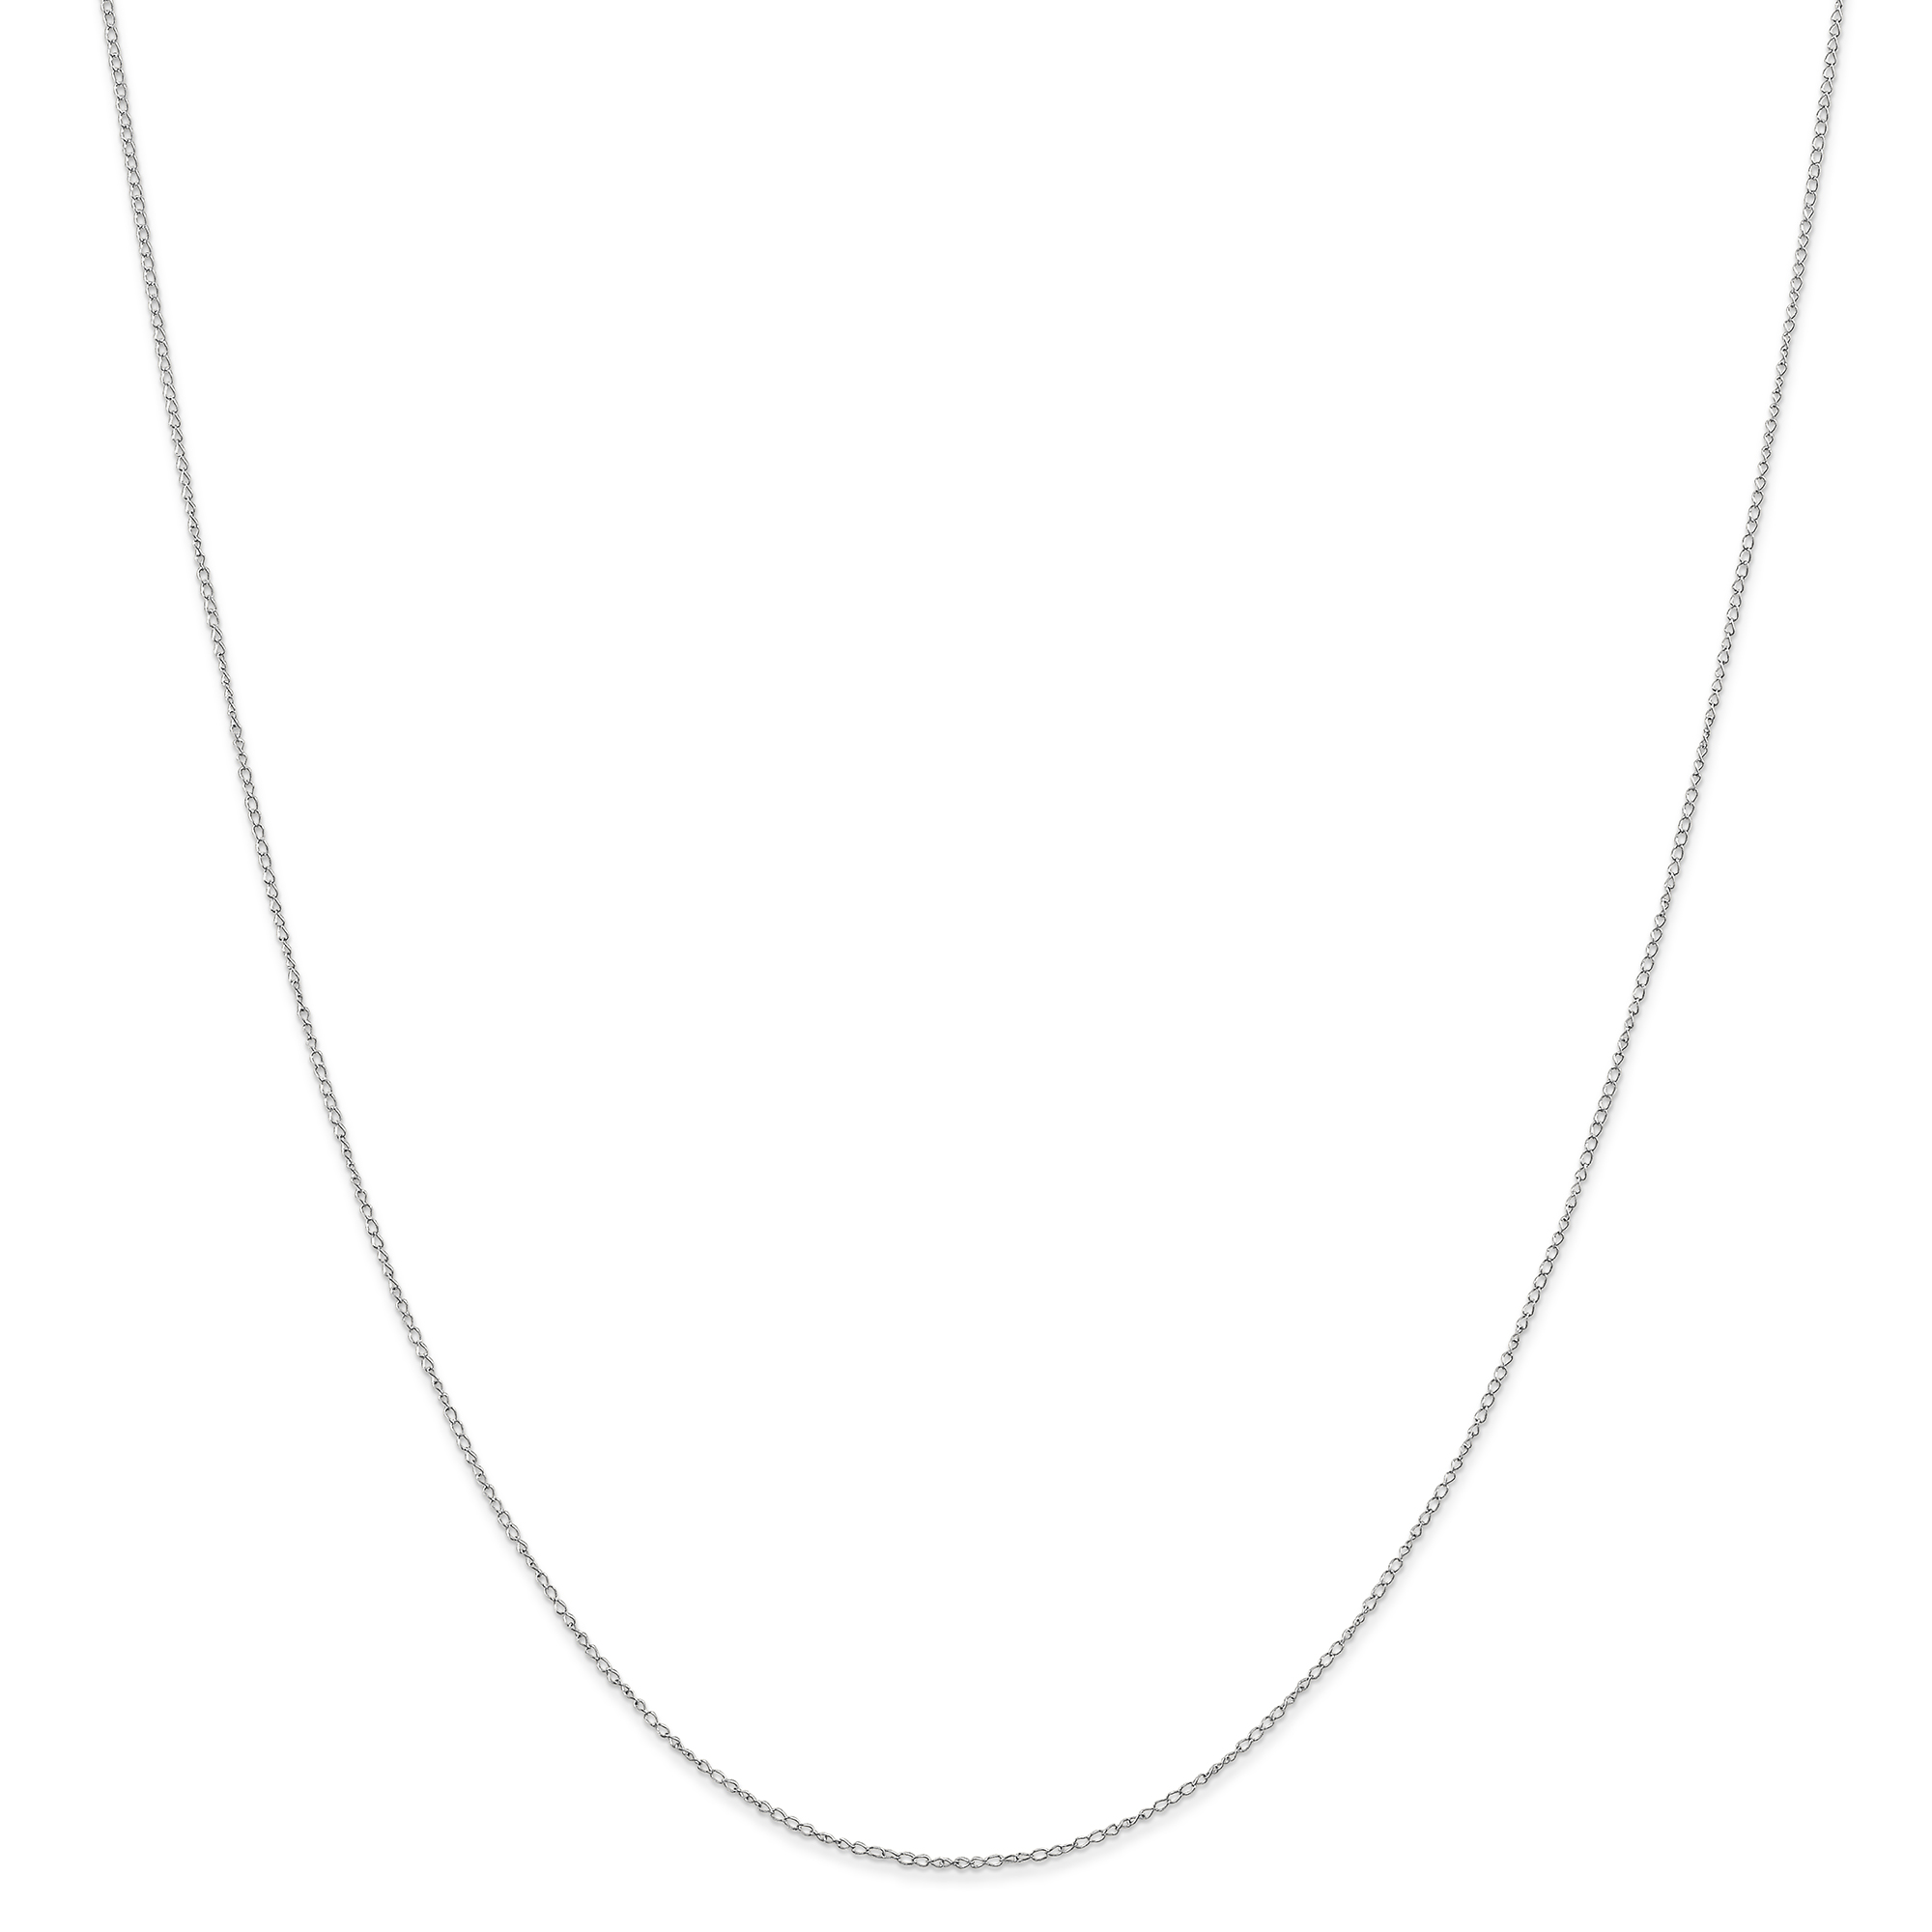 10k White Gold .42 Mm Carded Link Curb Necklace Chain Pendant Charm Fine Jewelry Gifts For Women For Her - image 6 of 6